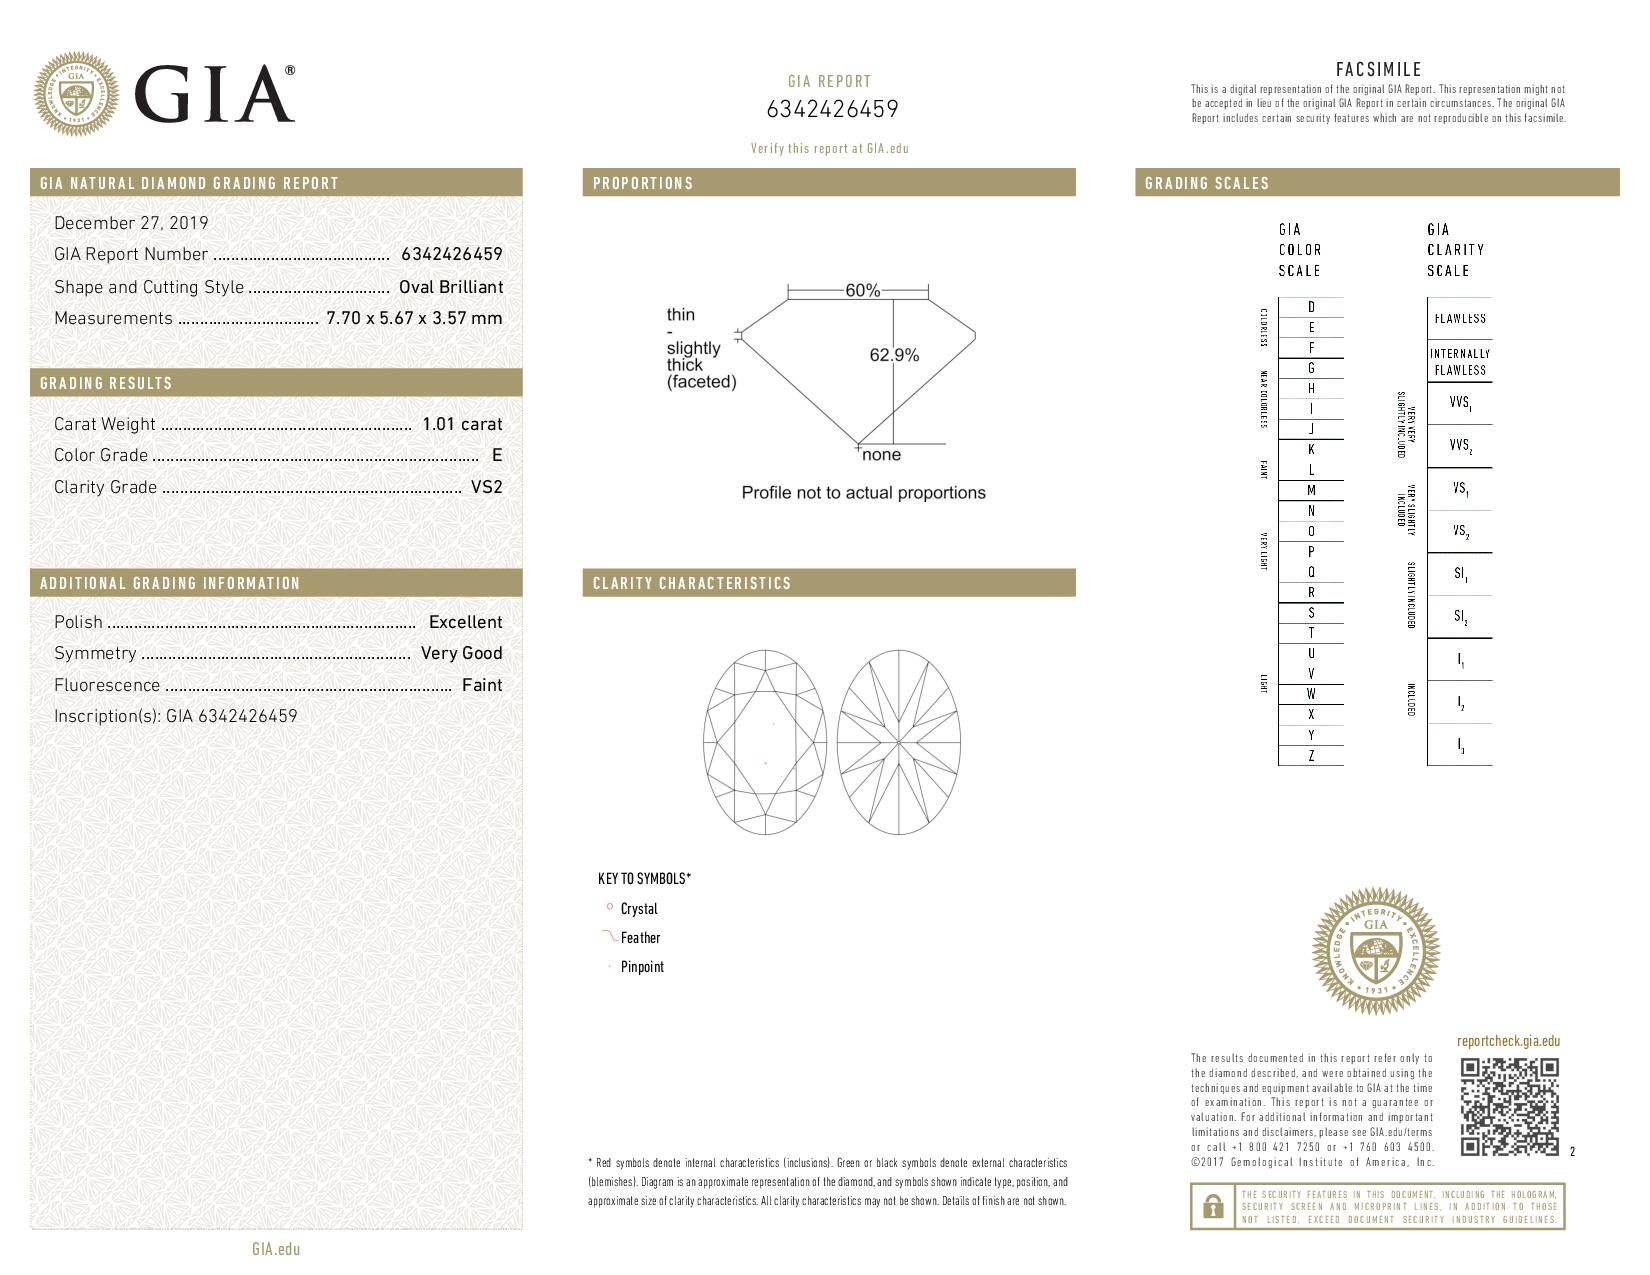 This is a 1.01 carat oval shape, E color, VS2 clarity natural diamond accompanied by a GIA grading report.